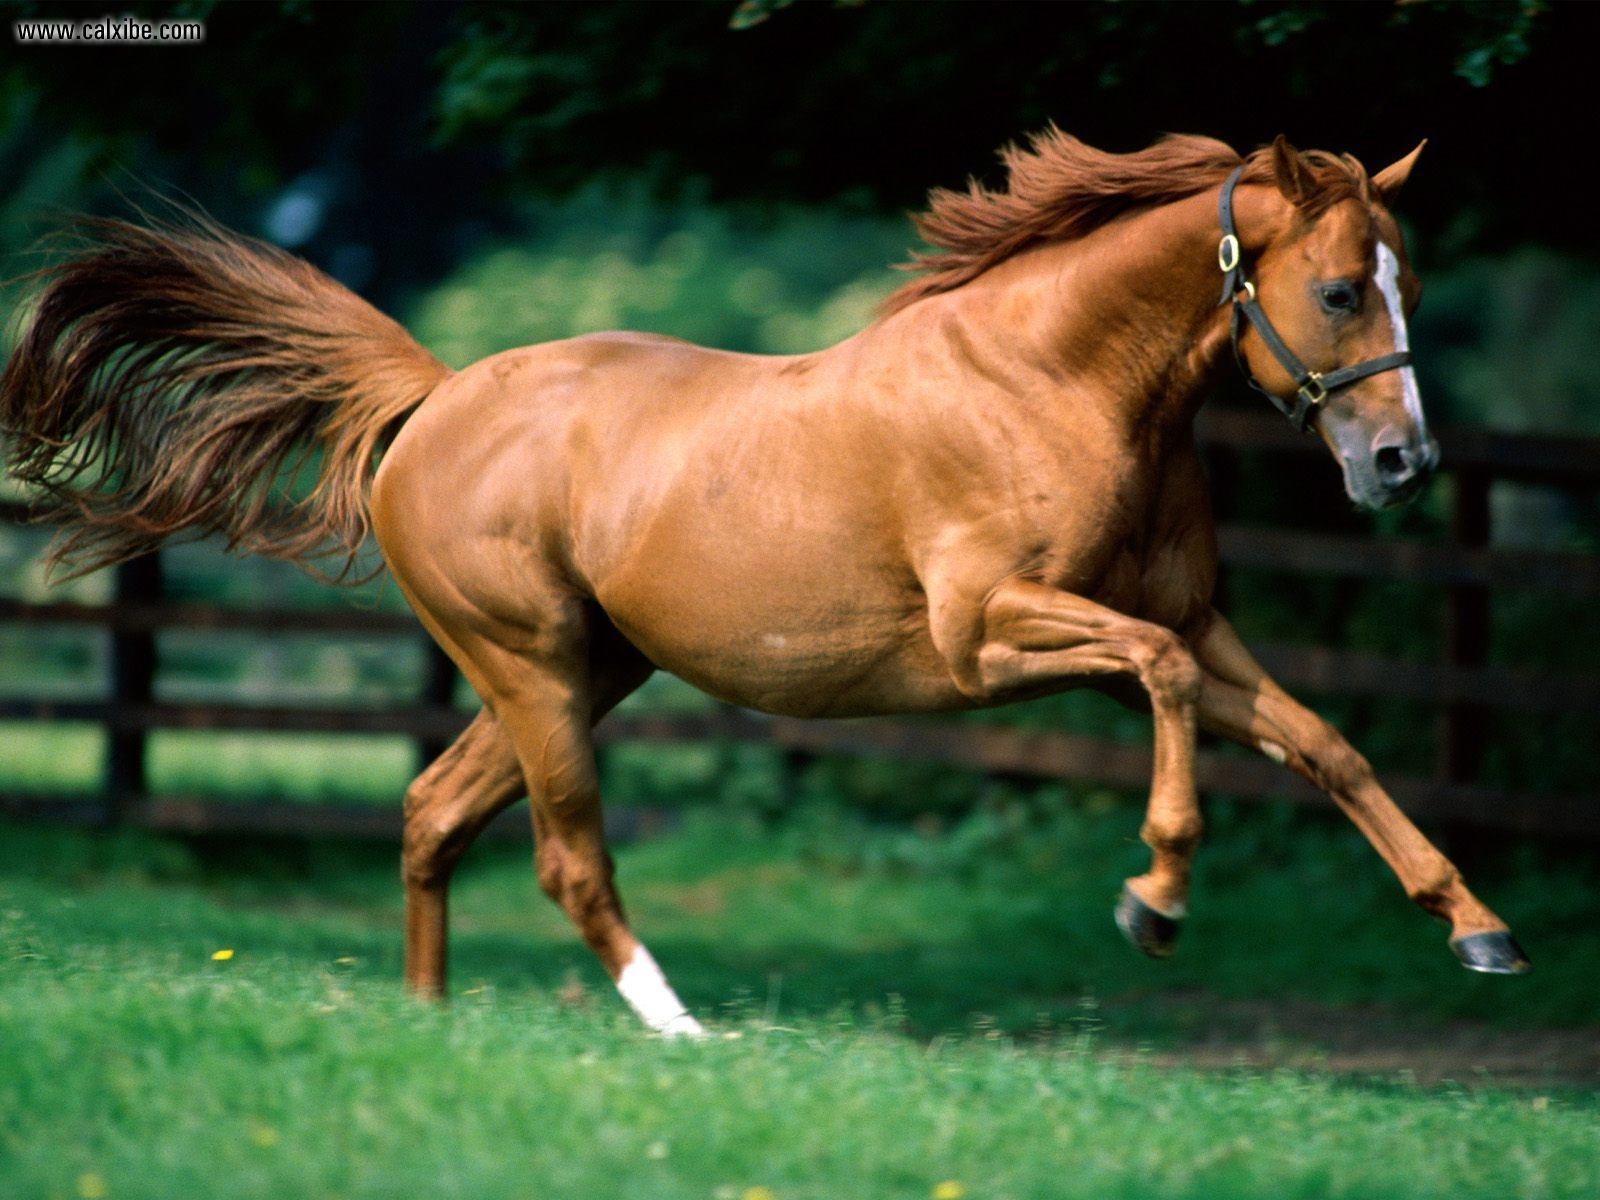 Animals Zoo Park: Horse Wallpapers, Photos, Pictures